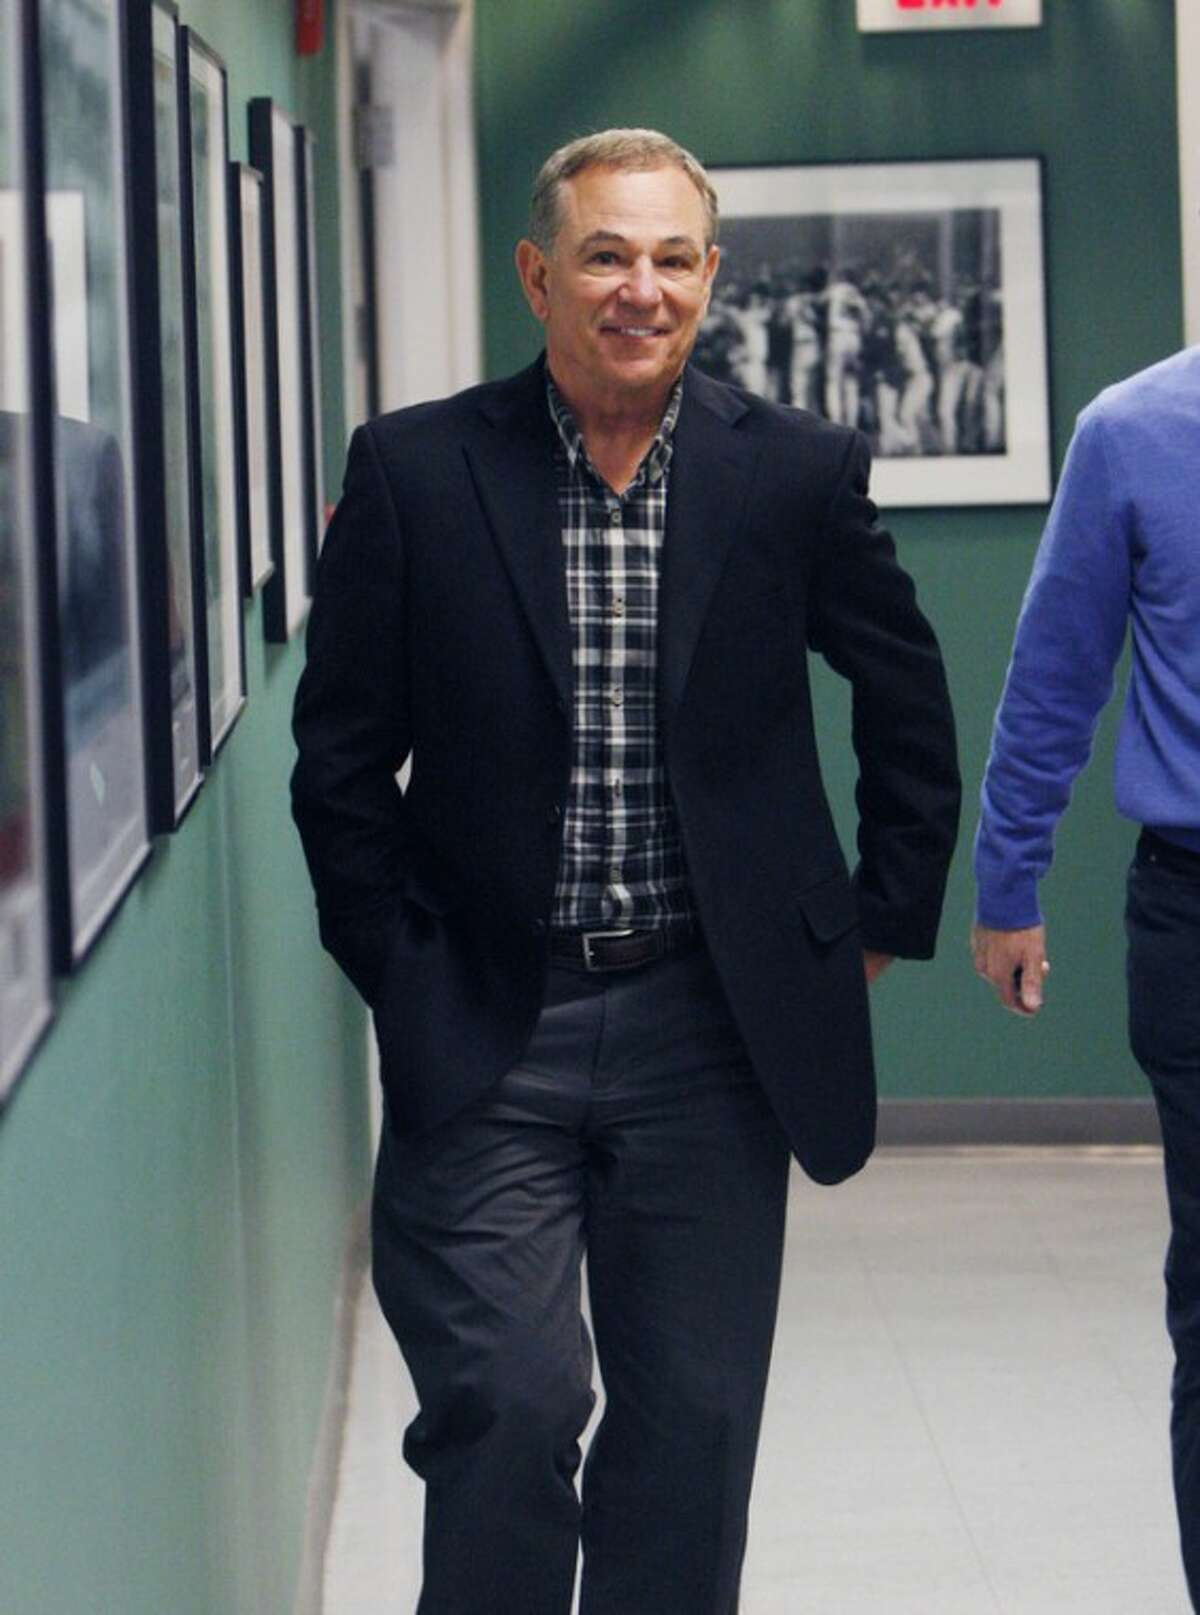 AP photo Bobby Valentine walks down a hall at Fenway Park after his interview for the Red Sox manager job. He will be introduced as the manager today.